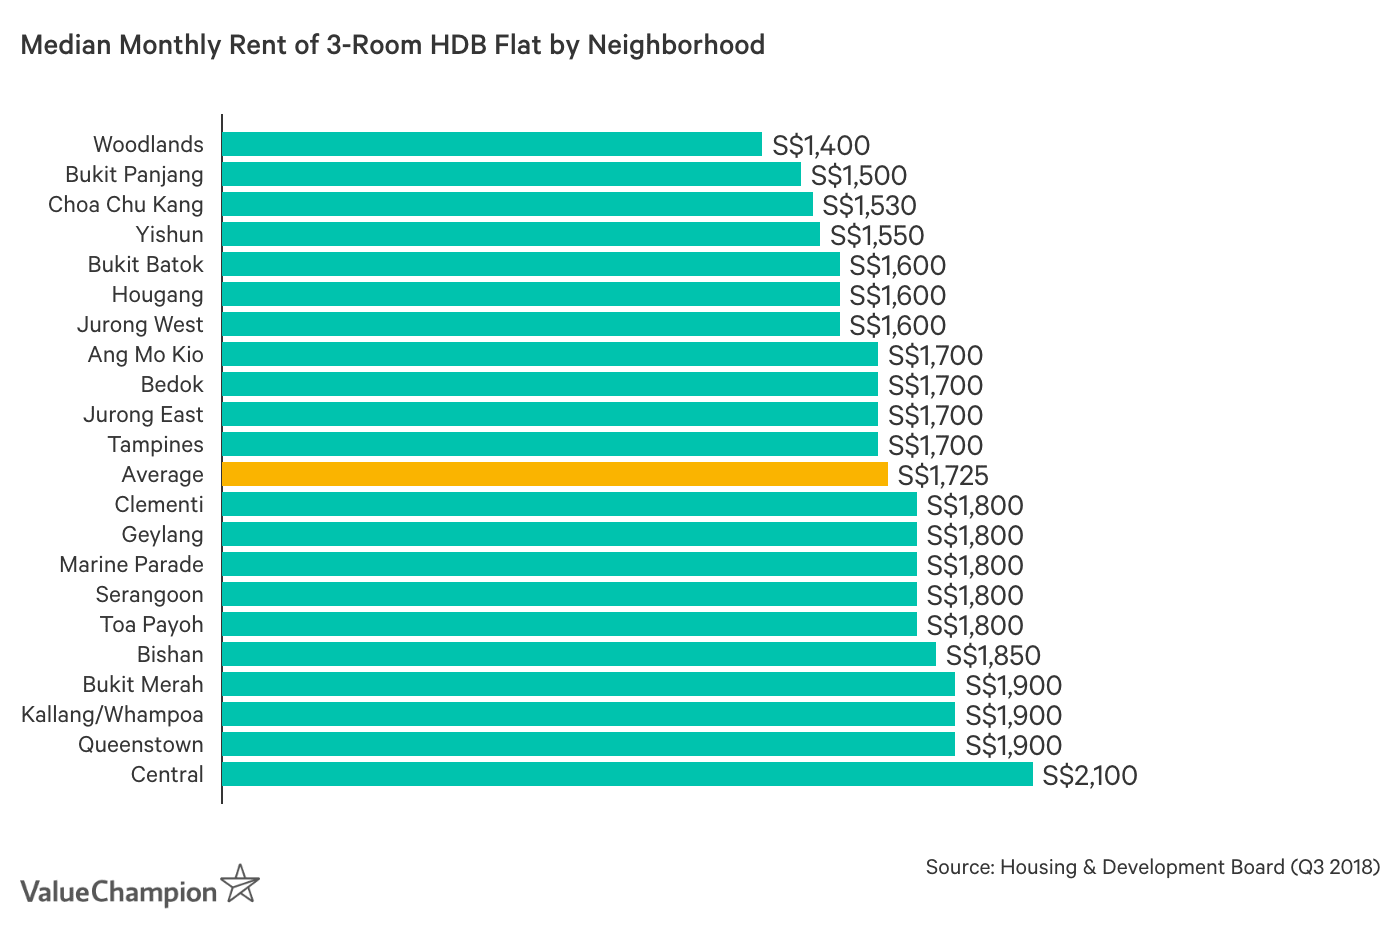 Median Monthly Rent of 3-Room HDB Flat by Neighborhood